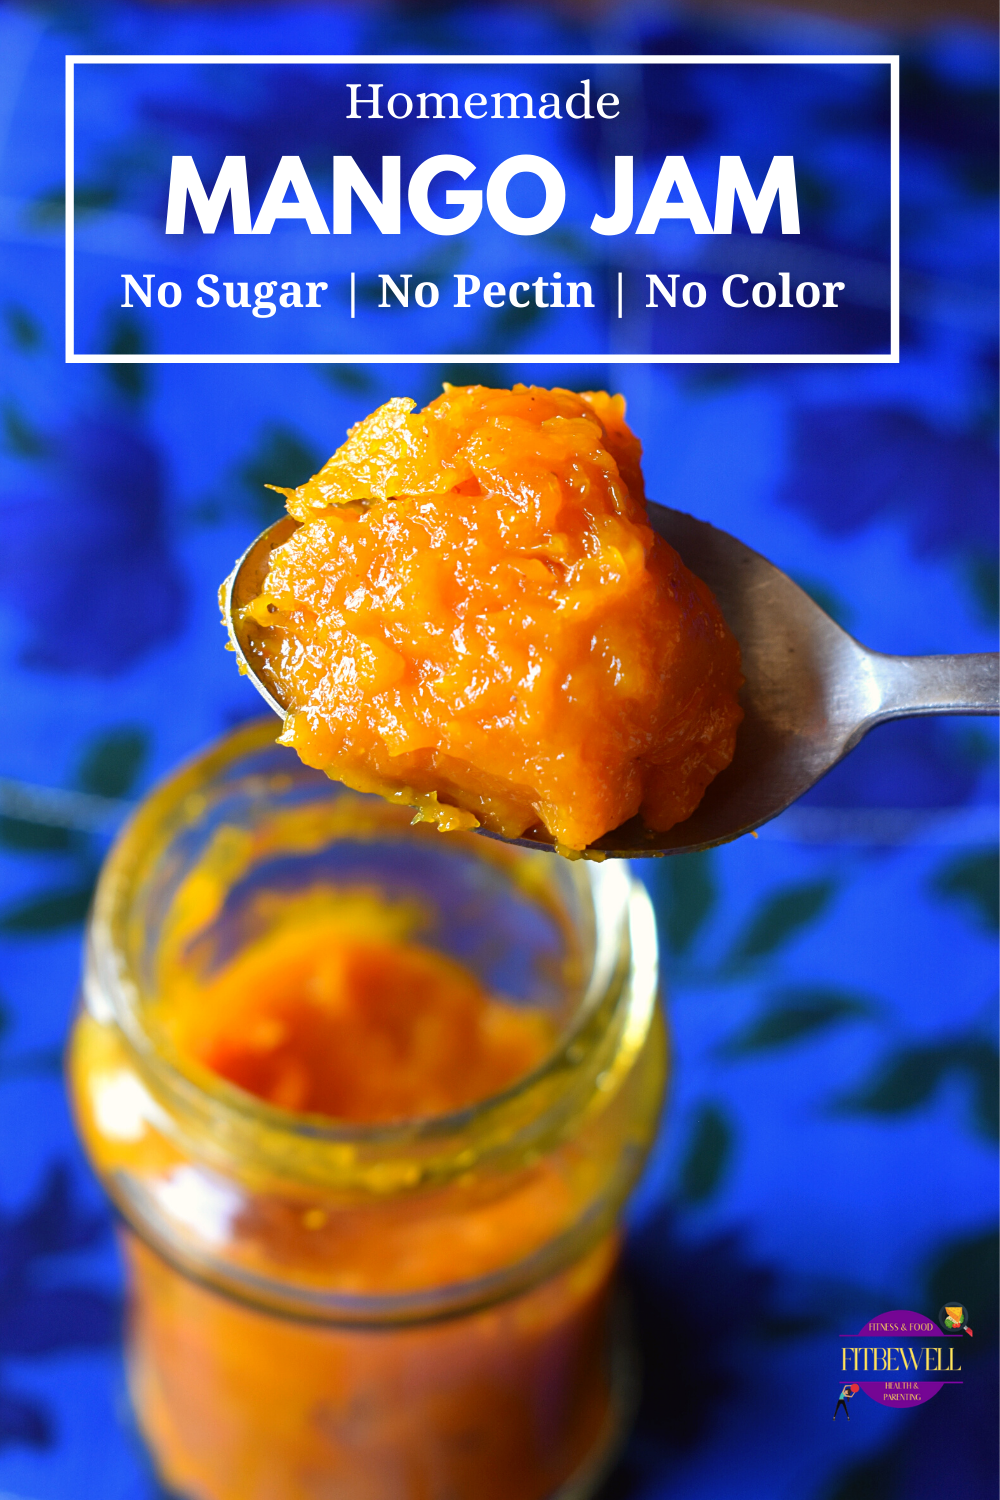 Making homemade sugar-free mango jam without pectin or preservatives